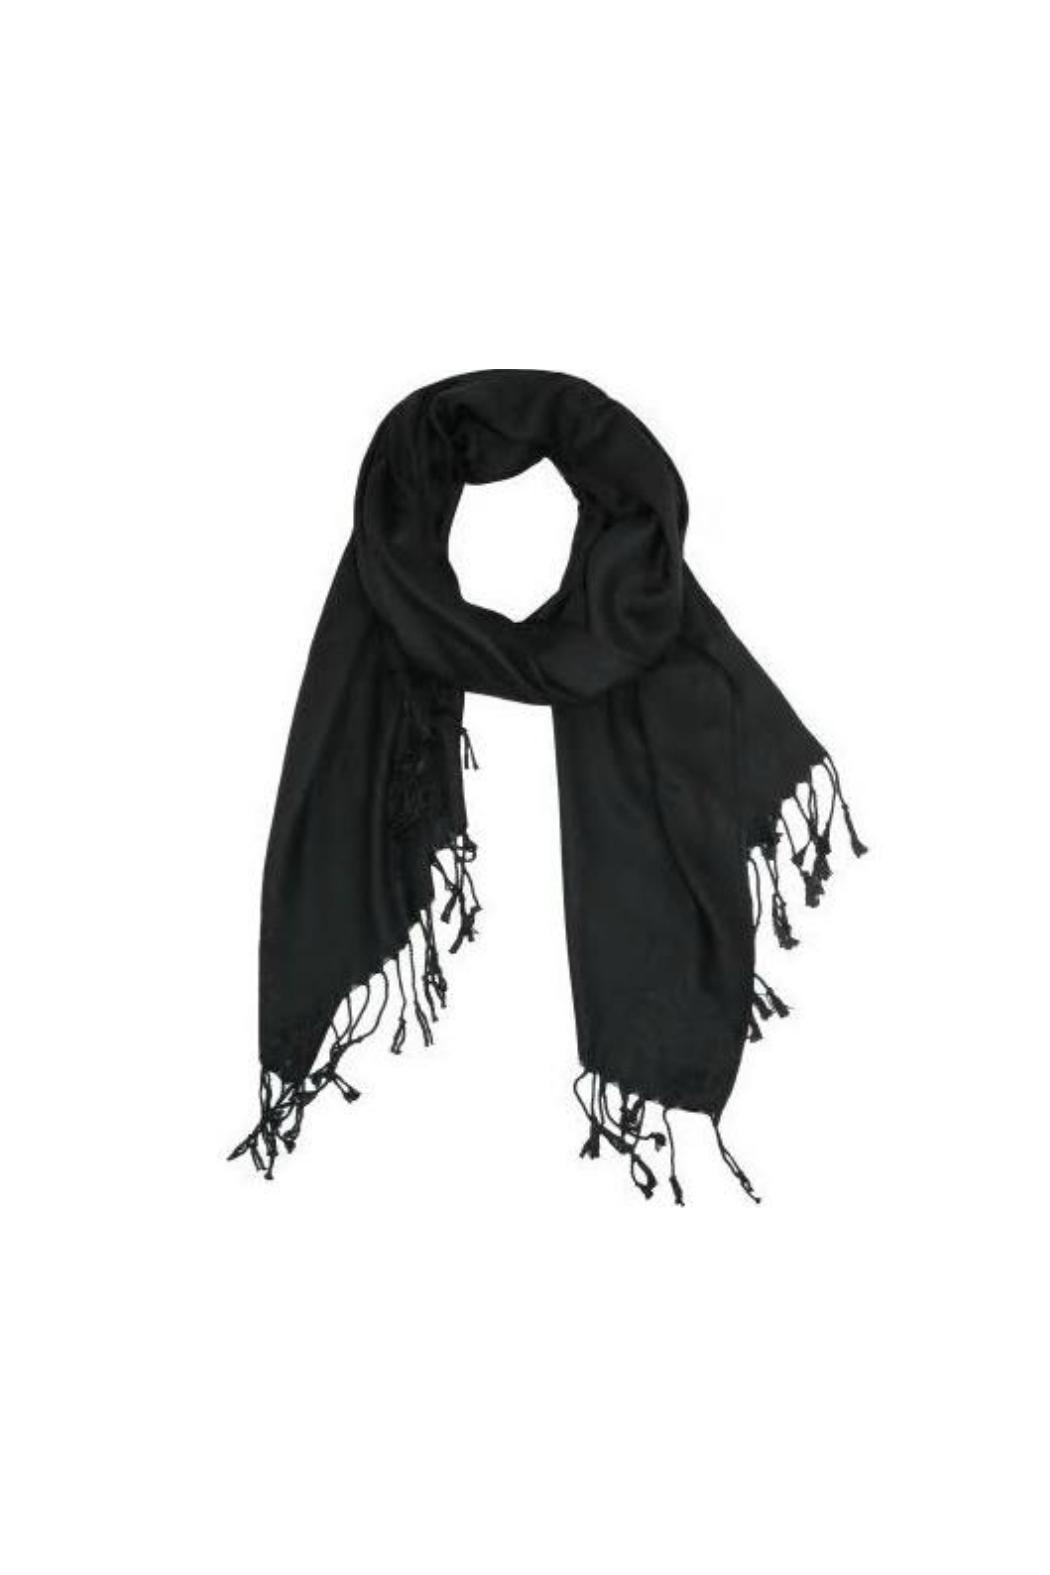 6th Borough Boutique Black Pashmina Scarf - Front Cropped Image